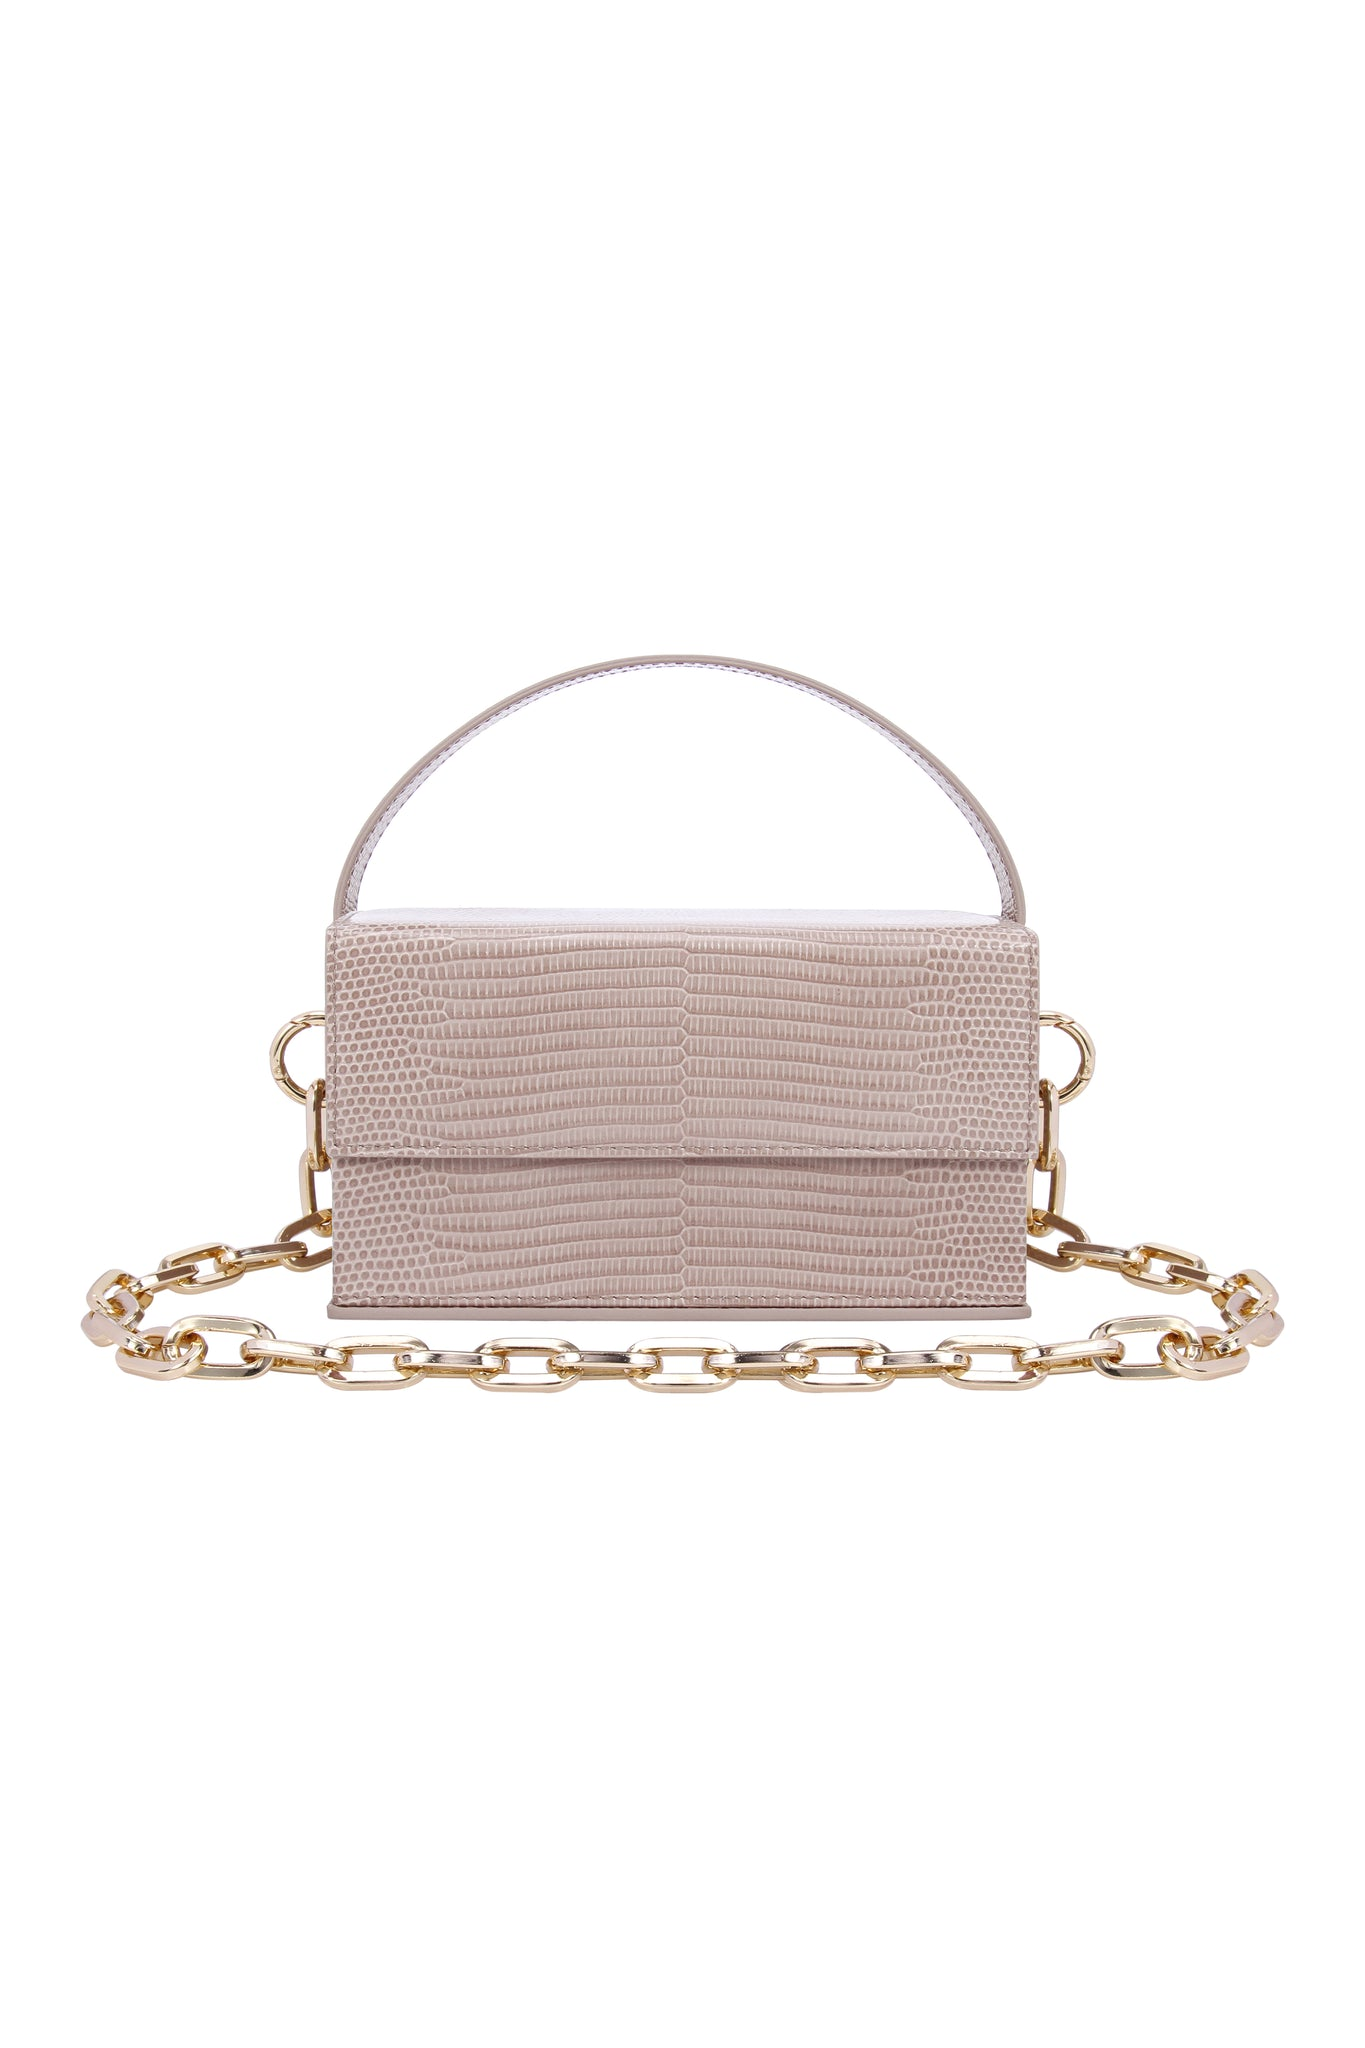 IDA Taupe Lizard (Small) with Chain